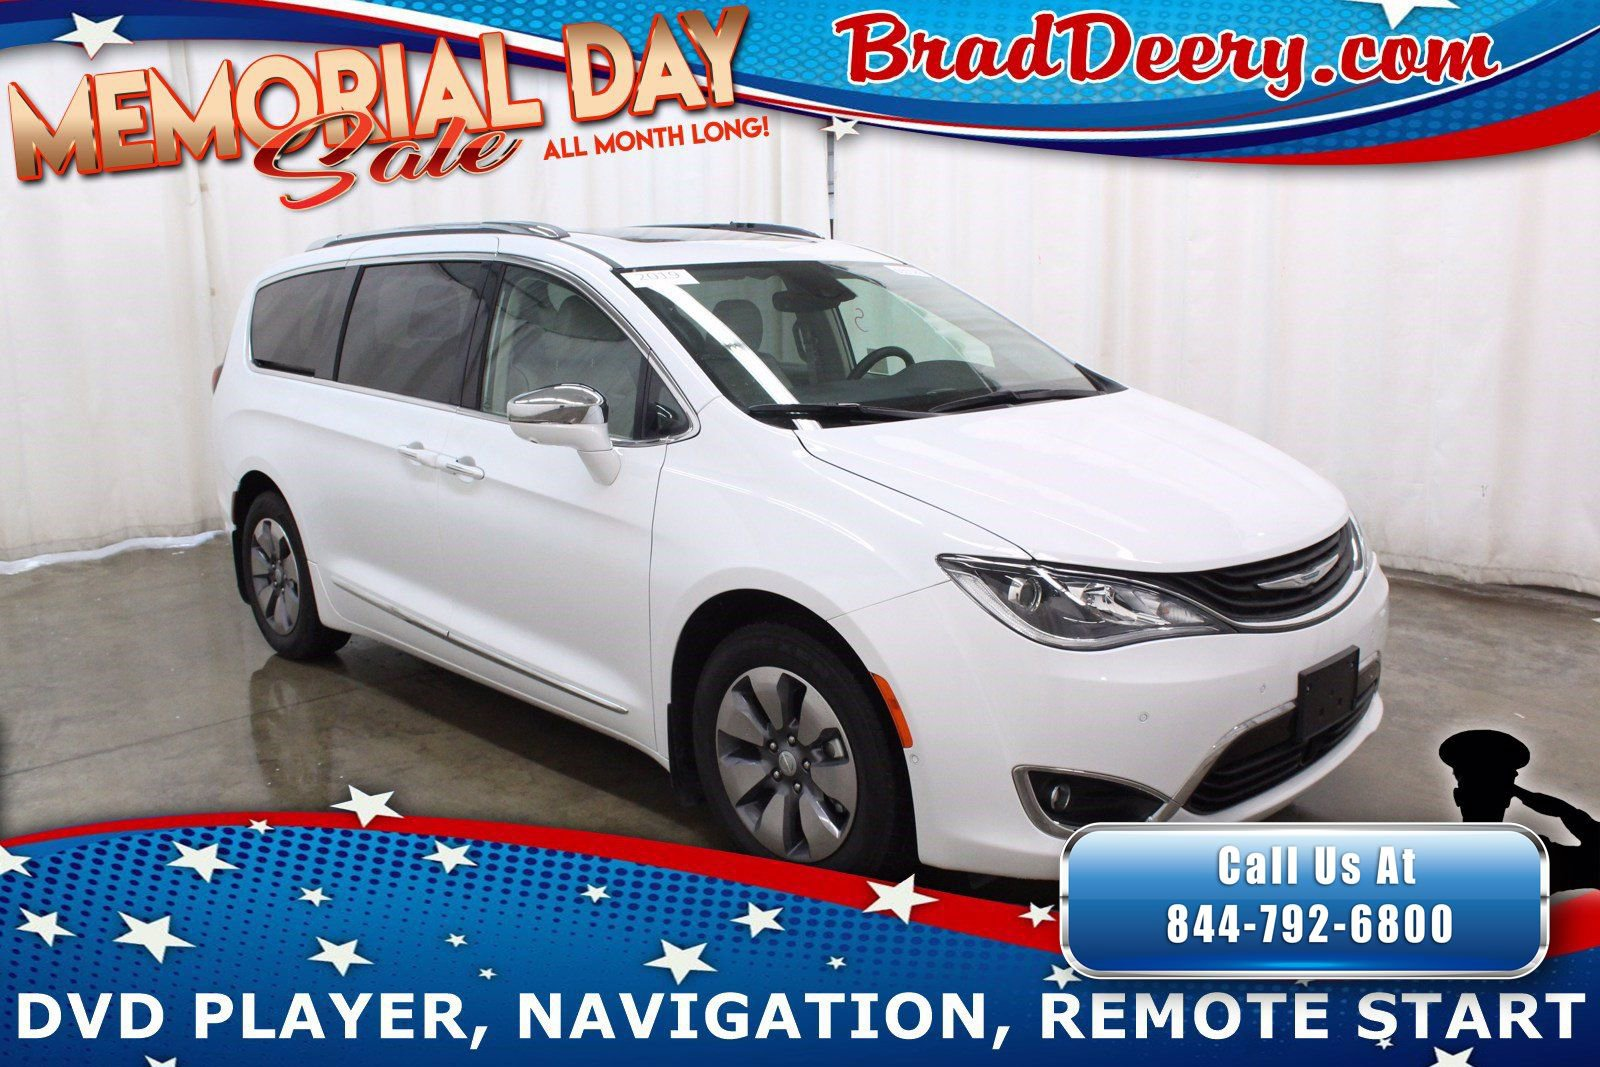 2019 Chrysler Pacifica Hybrid Limited w/ Dual Blu-Ray DVD Entertainment, Navigation, Sunroof, Heated & Cooled Leather